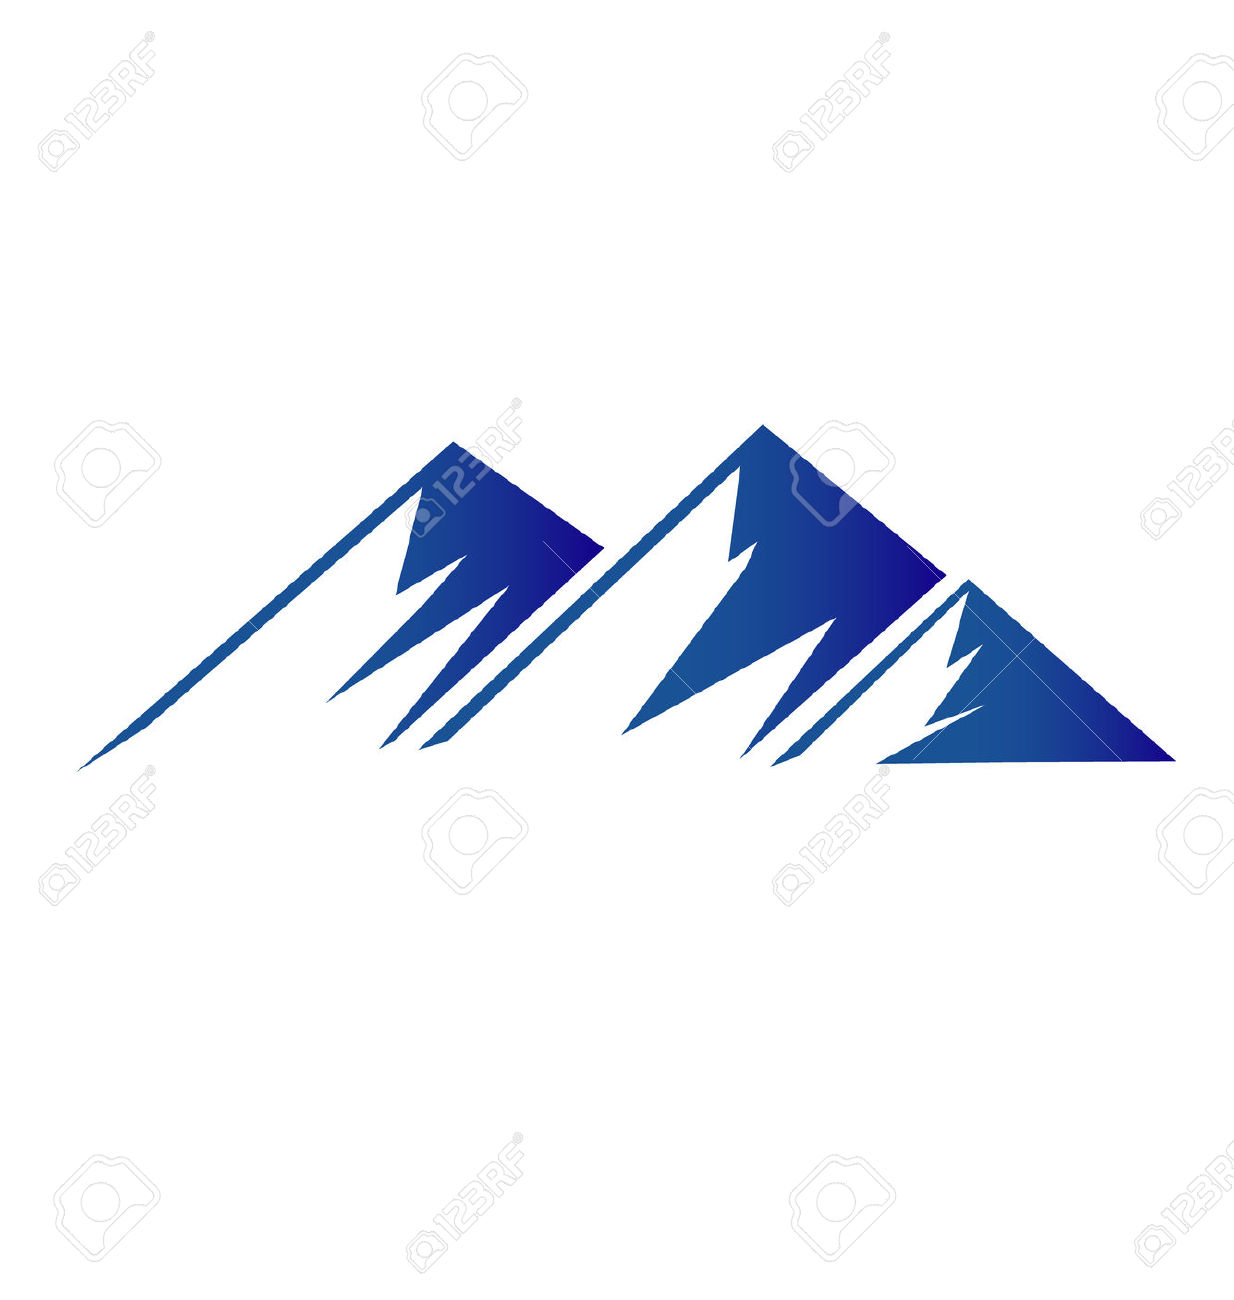 Alps Mountain clipart #13, Download drawings